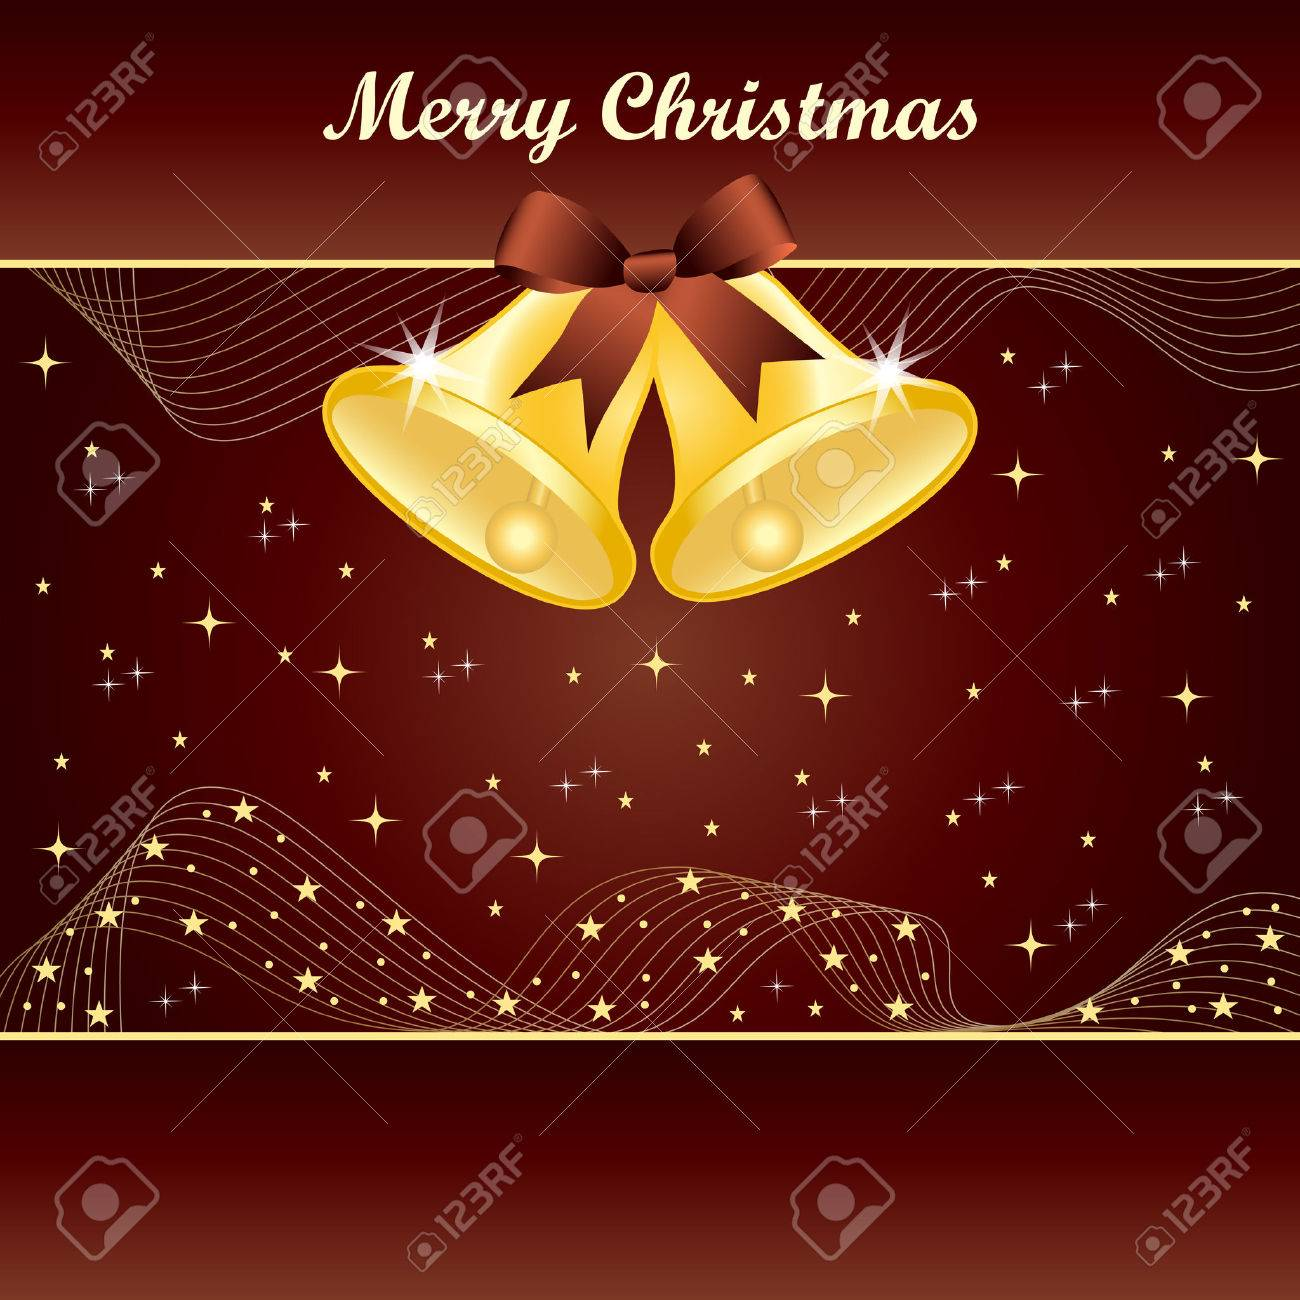 Gold christmas bells with pretty bow and yellow stars on dark brown background. Copy space for text. Stock Vector - 8093921